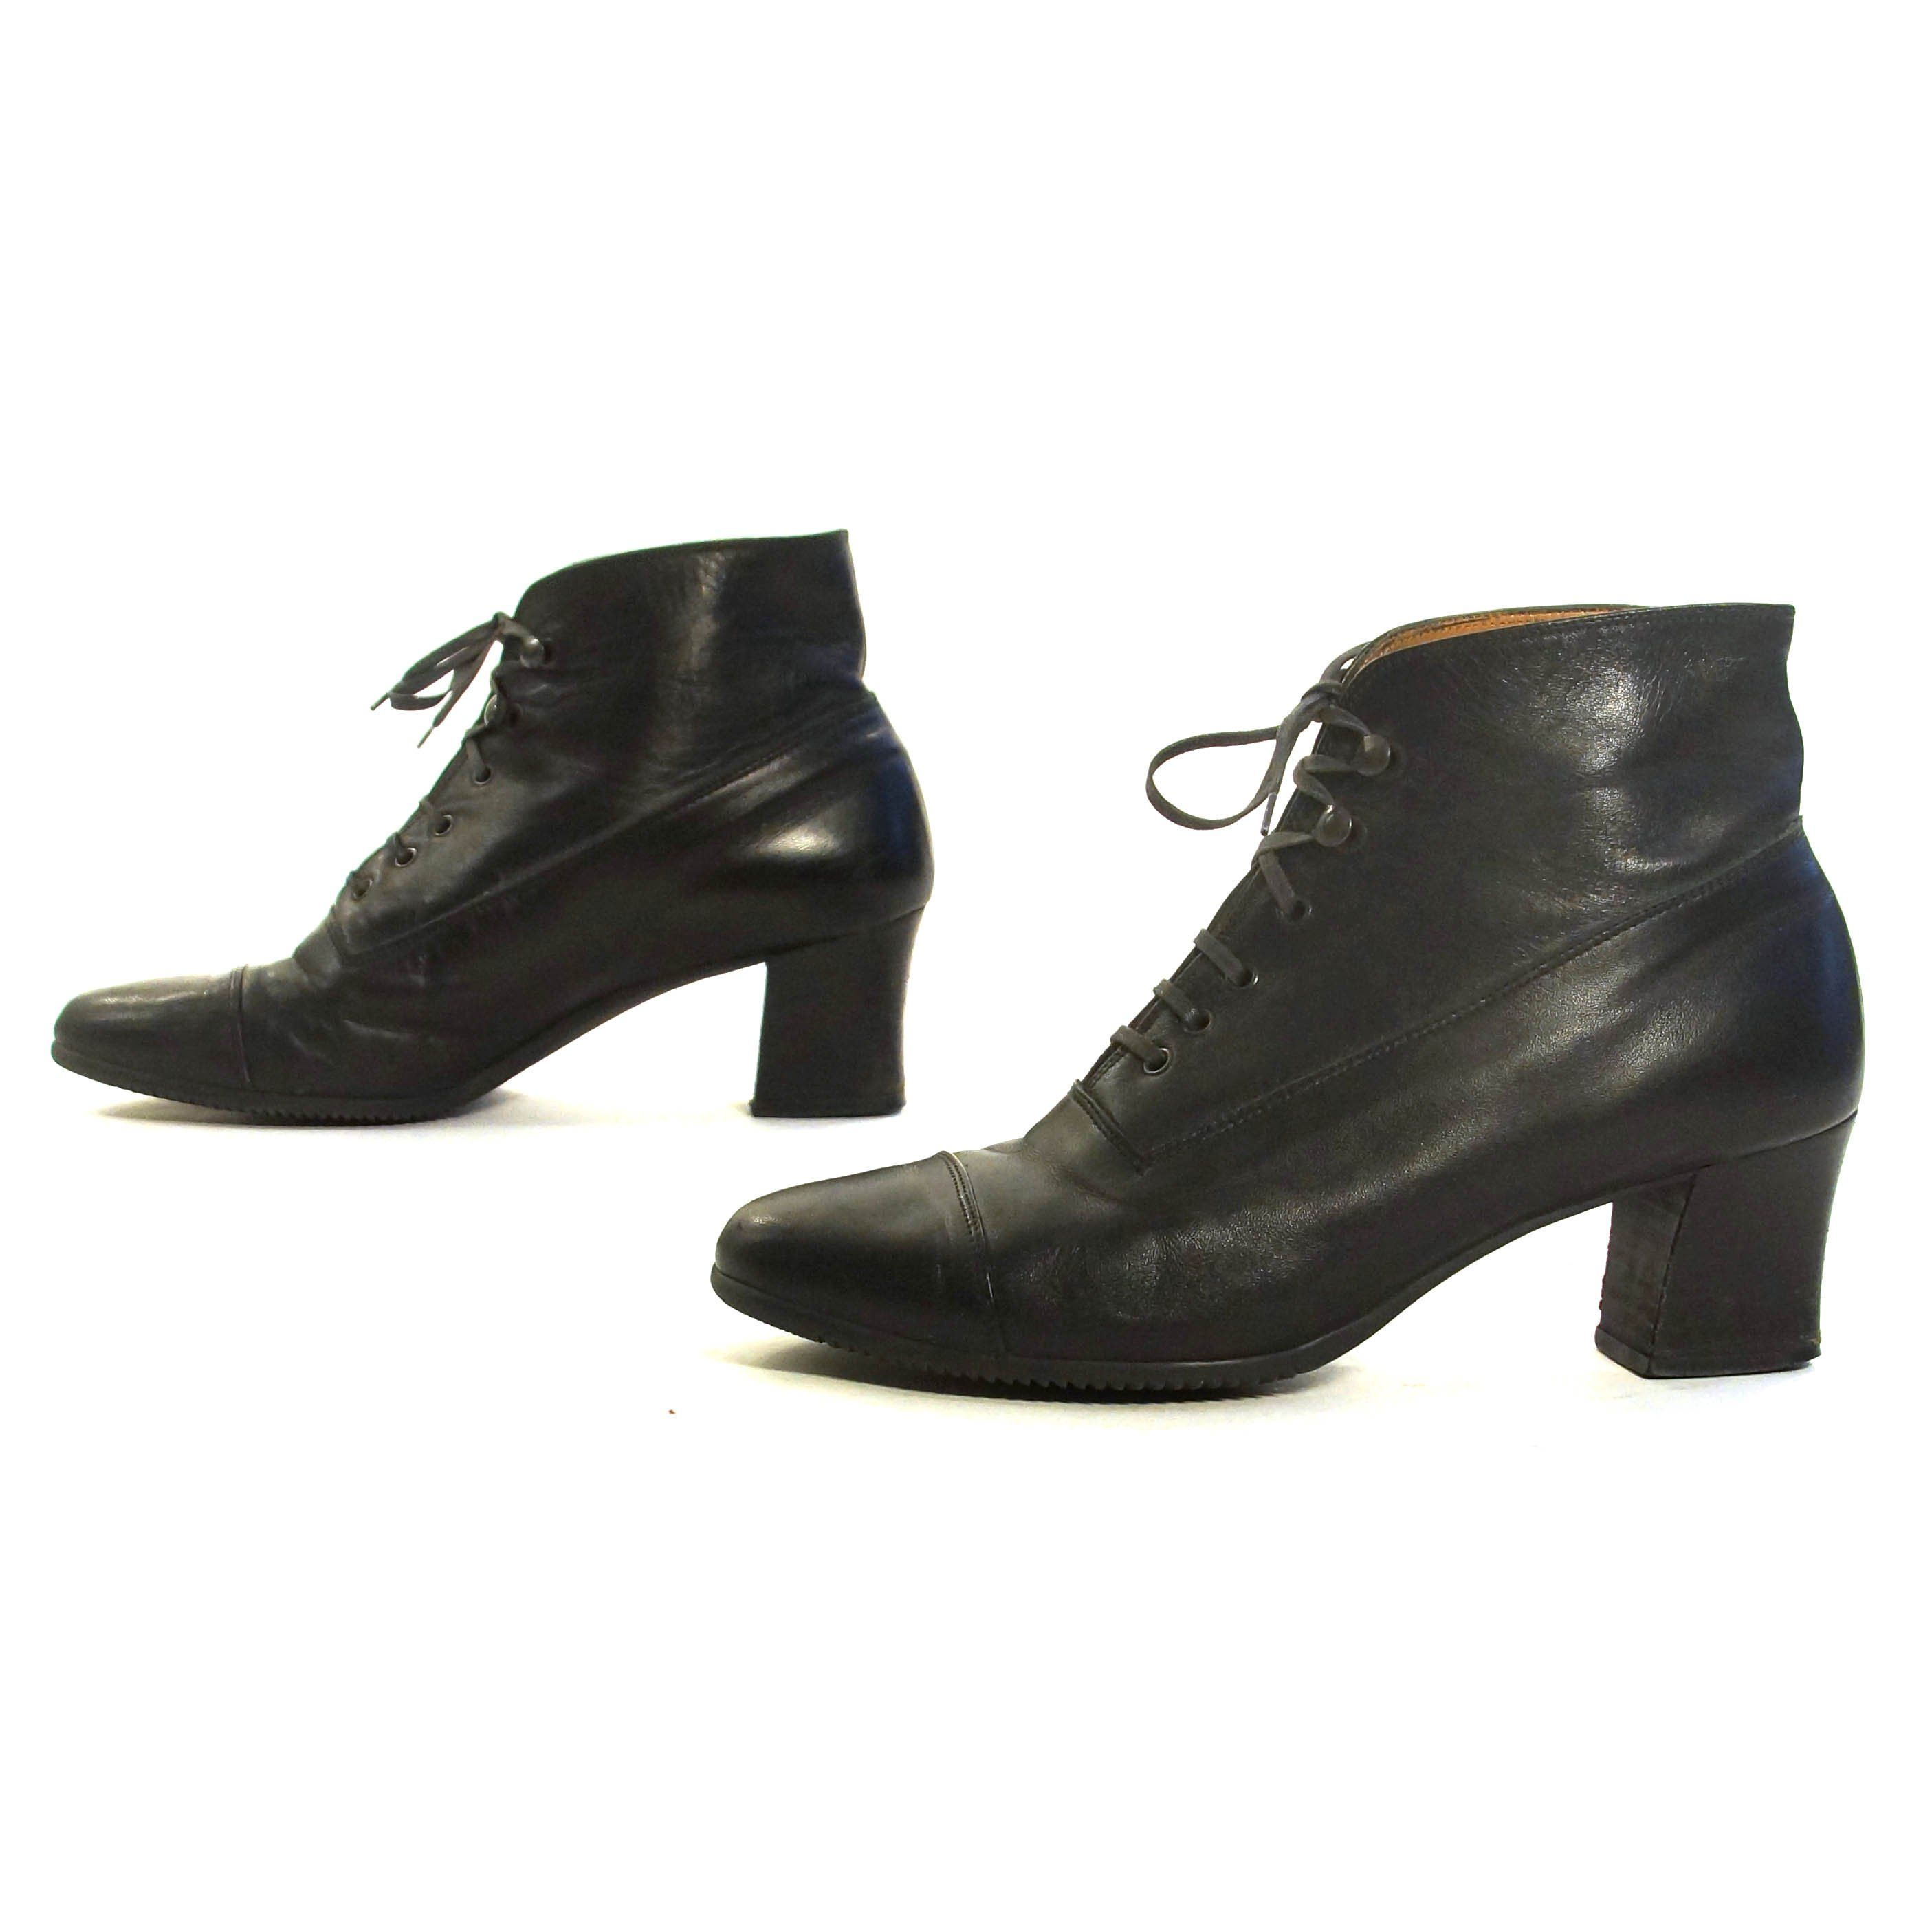 4bbc078c7c145 Lace Up Ankle Boots Vintage 90s Short Black Leather Booties with Low Block  Heels Boho Grunge Hipster Preppy Women's Size 9 by SpunkVintage on Etsy